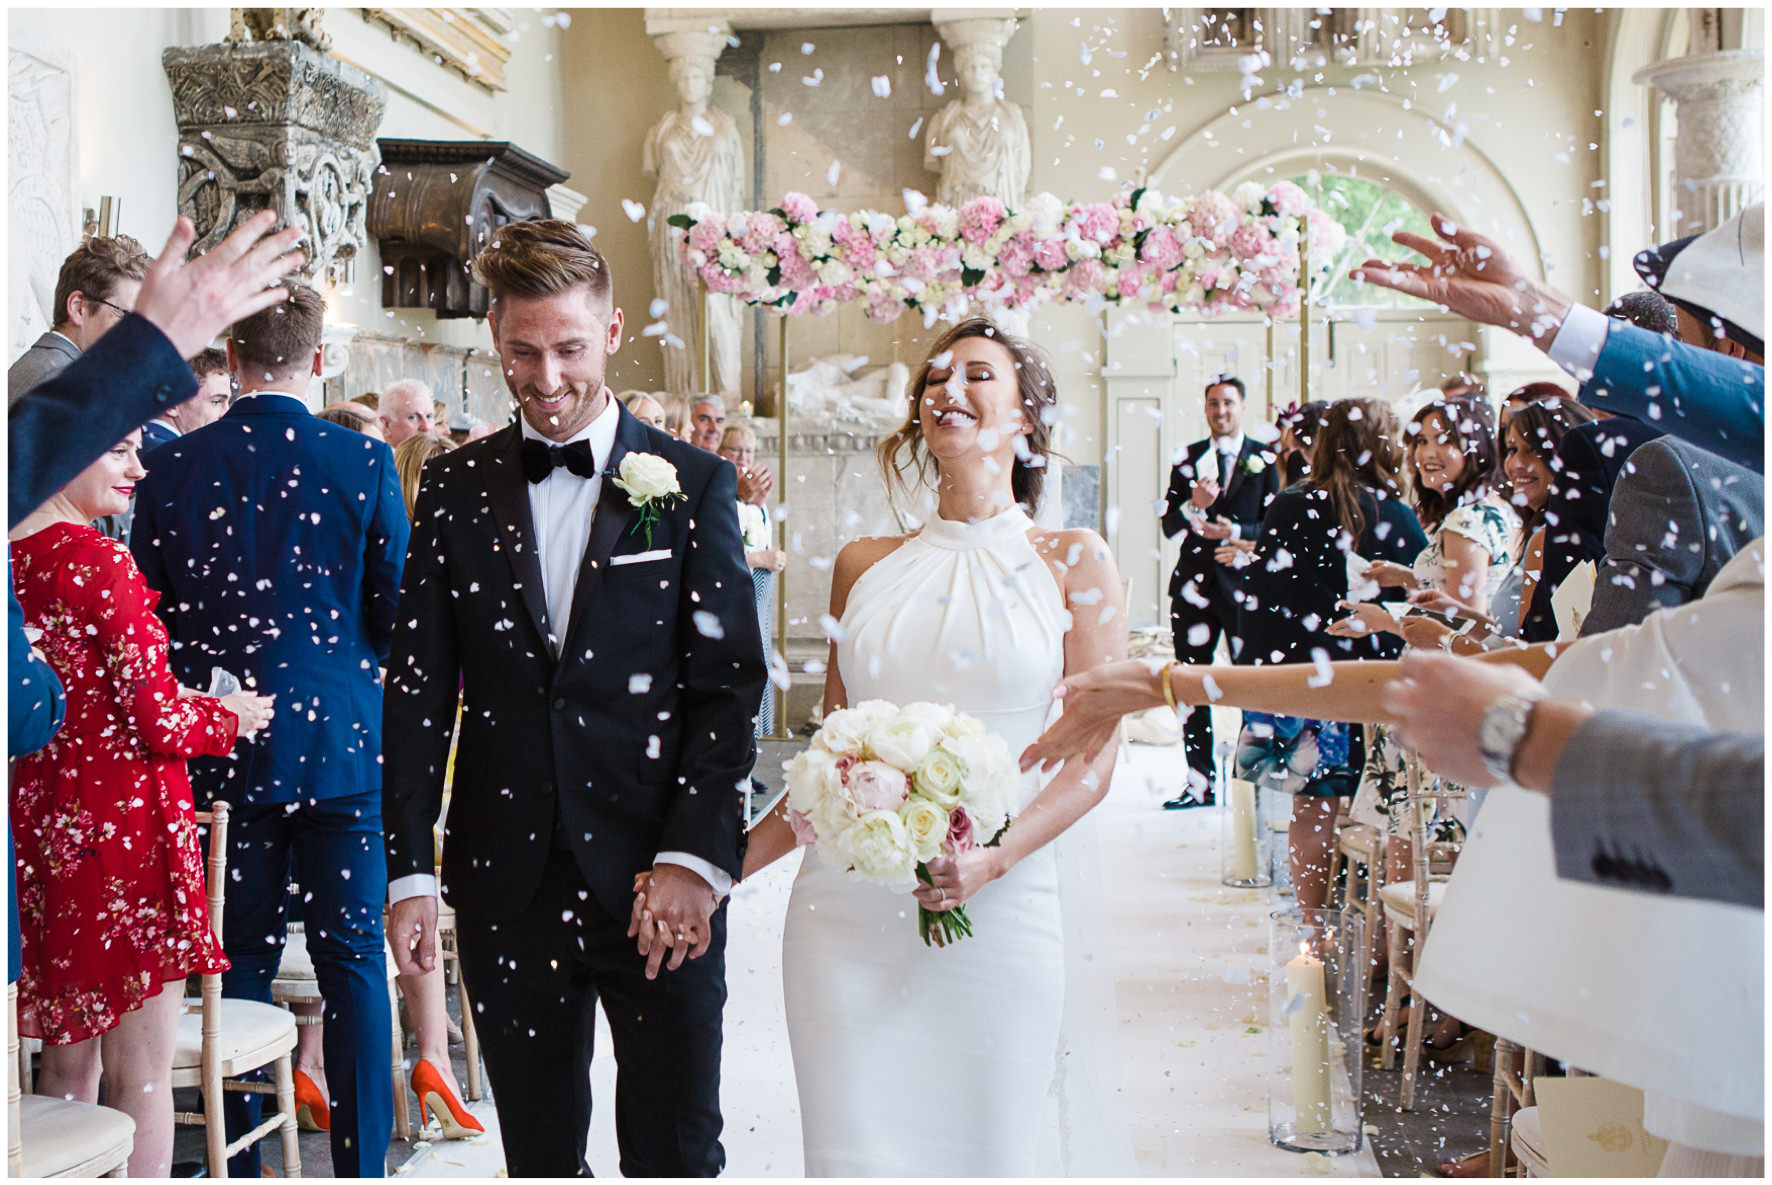 Lucy Davenport Photography, Aynhoe Park, Oxfordshire, wedding venue, Rock My Wedding, Orangery, bride and groom confetti